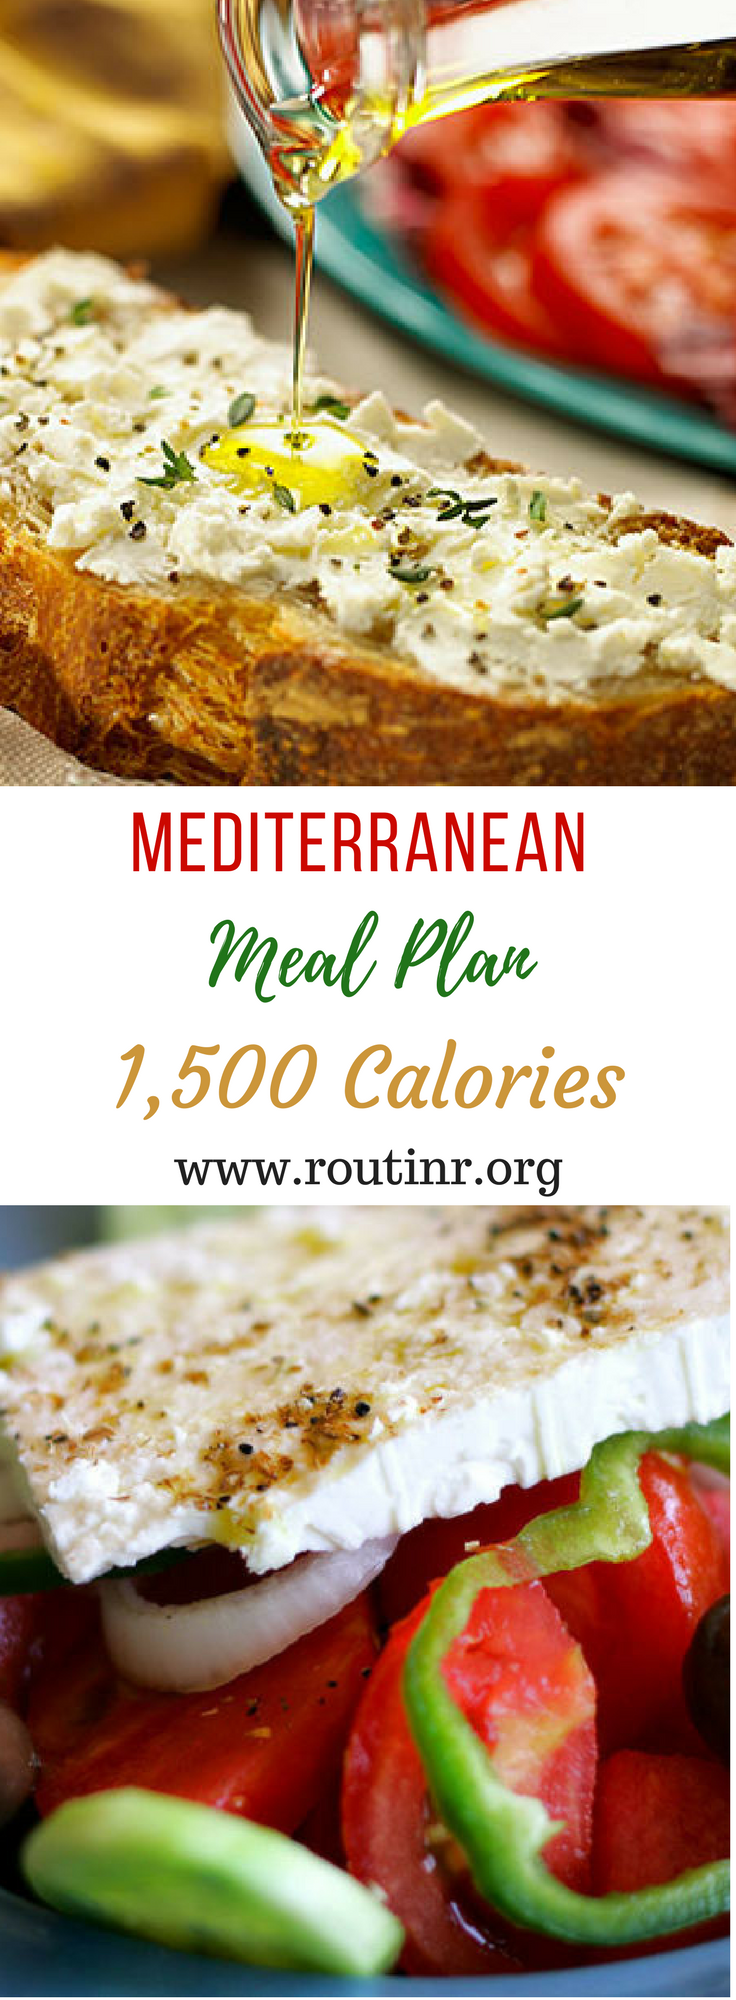 5+ Healthy Benefits of Following a Mediterranean Diet Plan Ideas